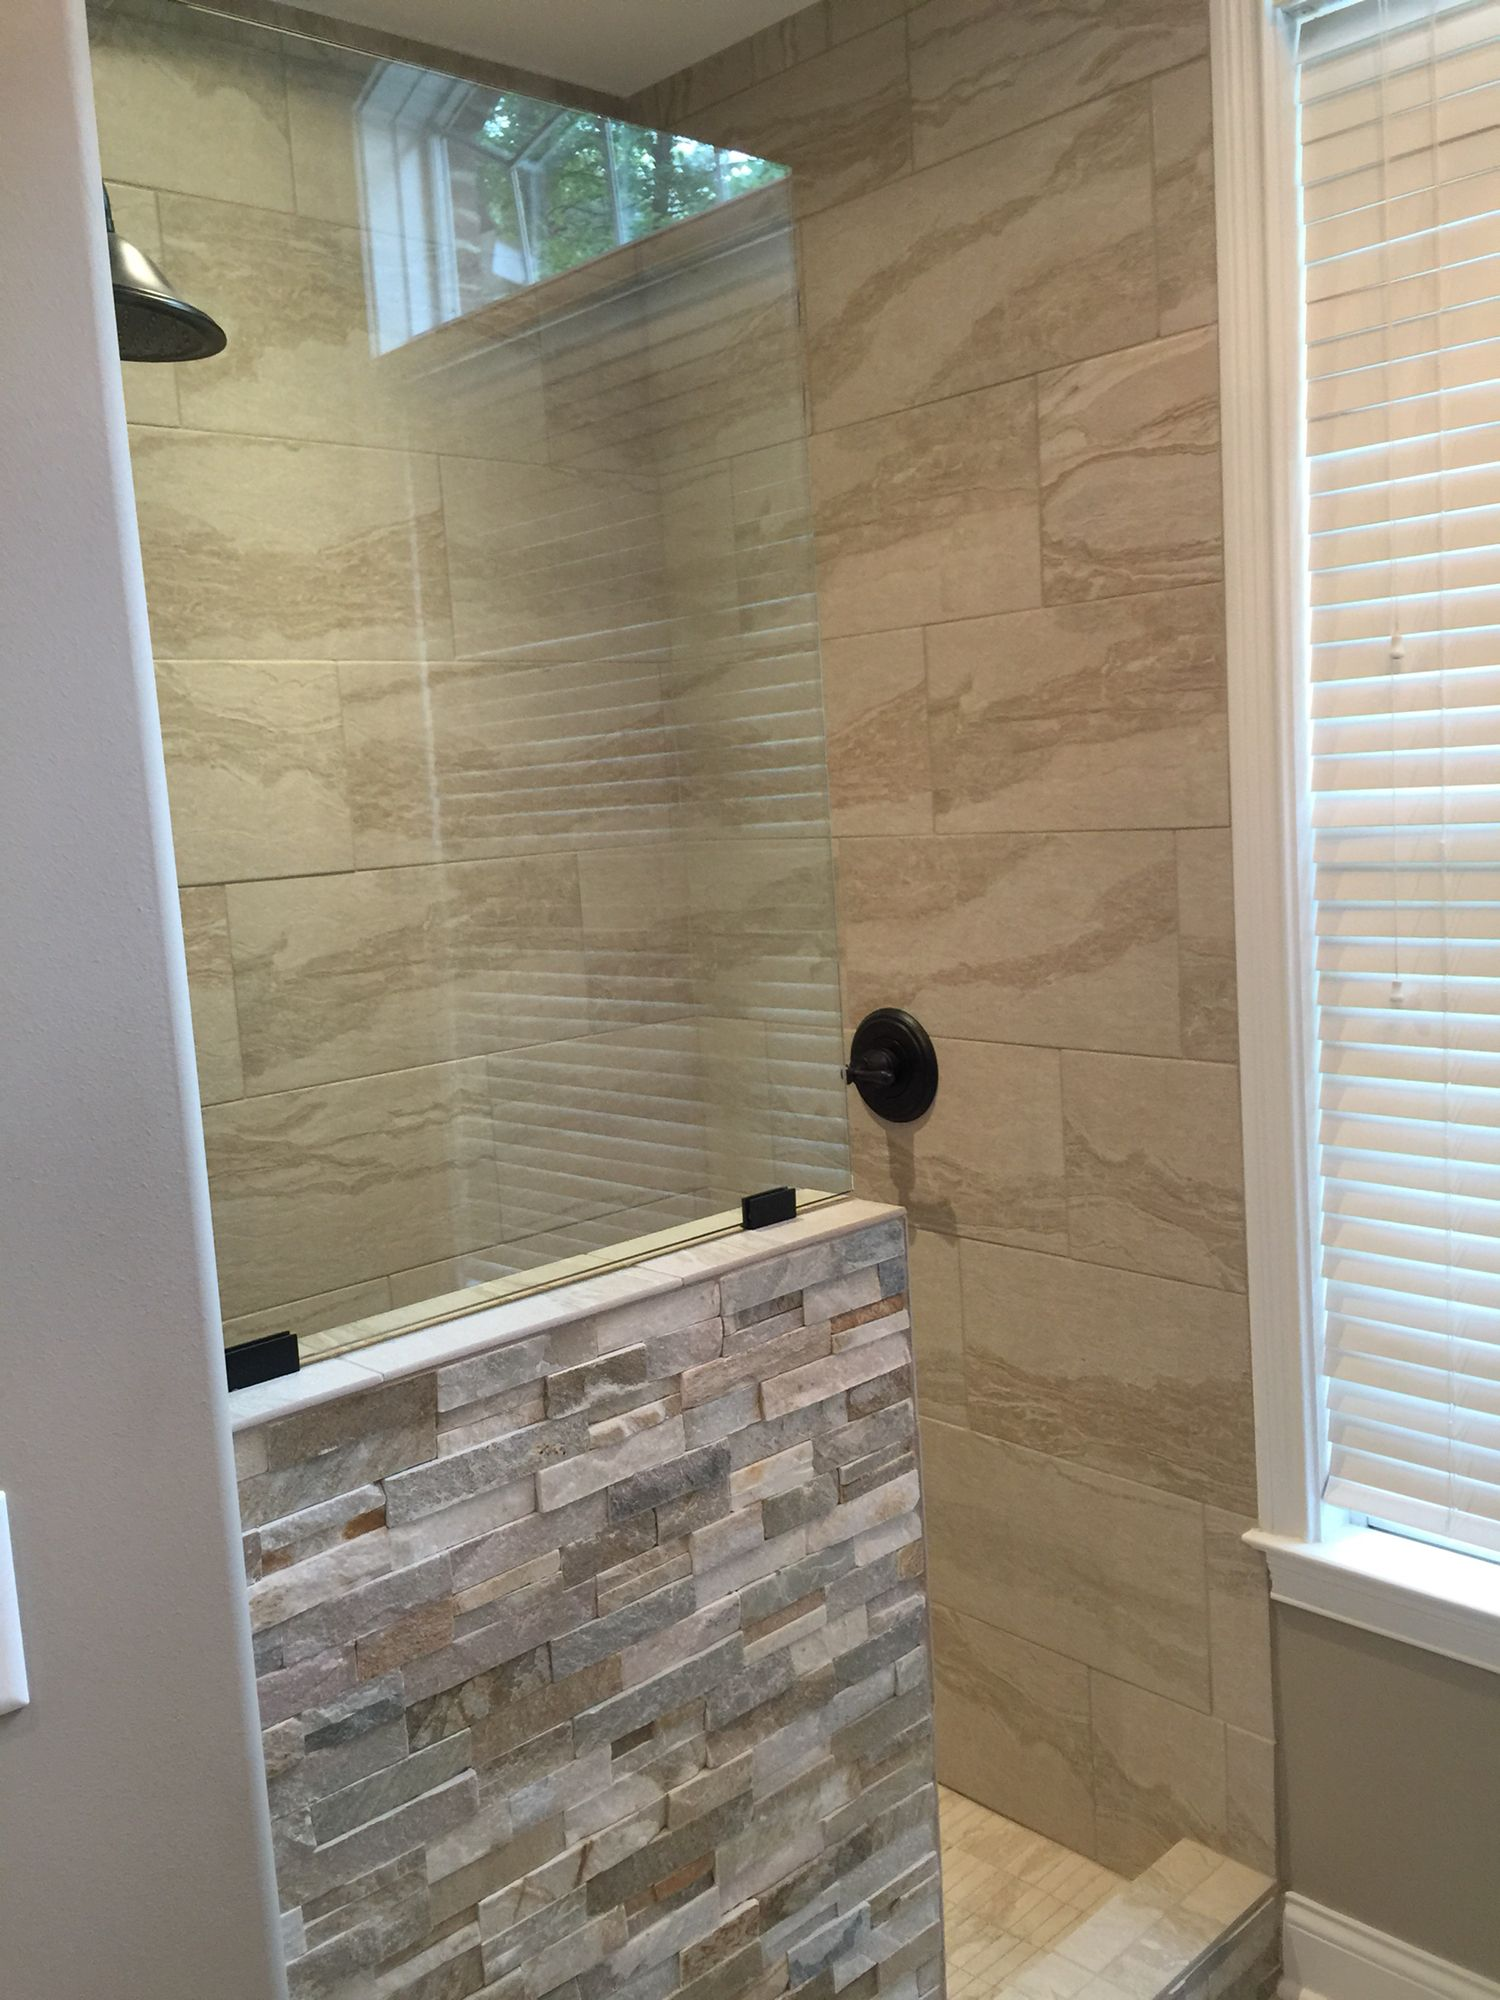 Walk in shower no door | Shower remodel, Small bathroom remodel